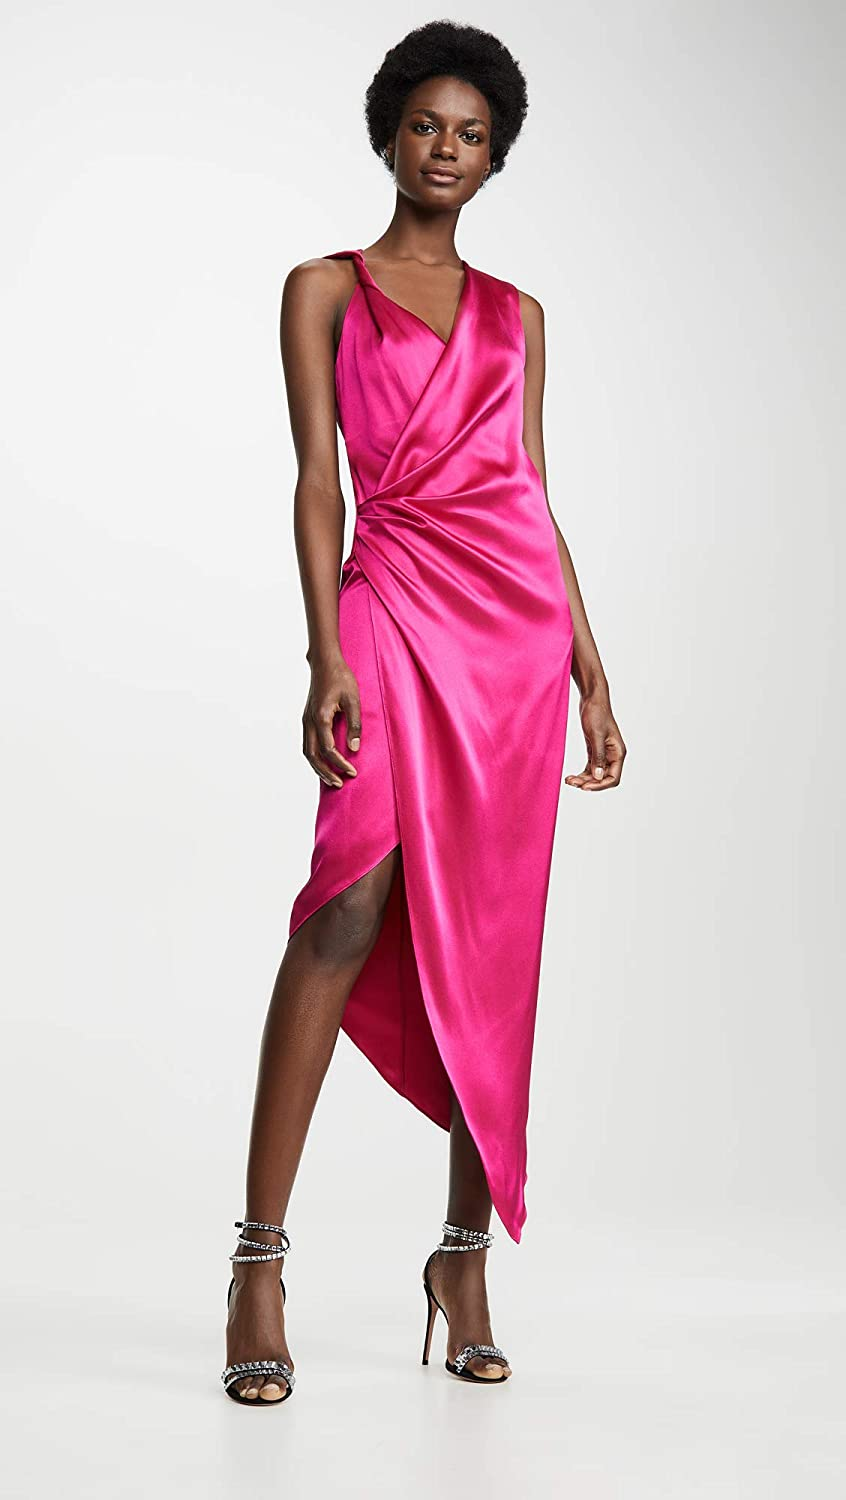 Black female model wearing pink Sleeveless Plunging Dress with Draped Bodice and Hem by Cushnie